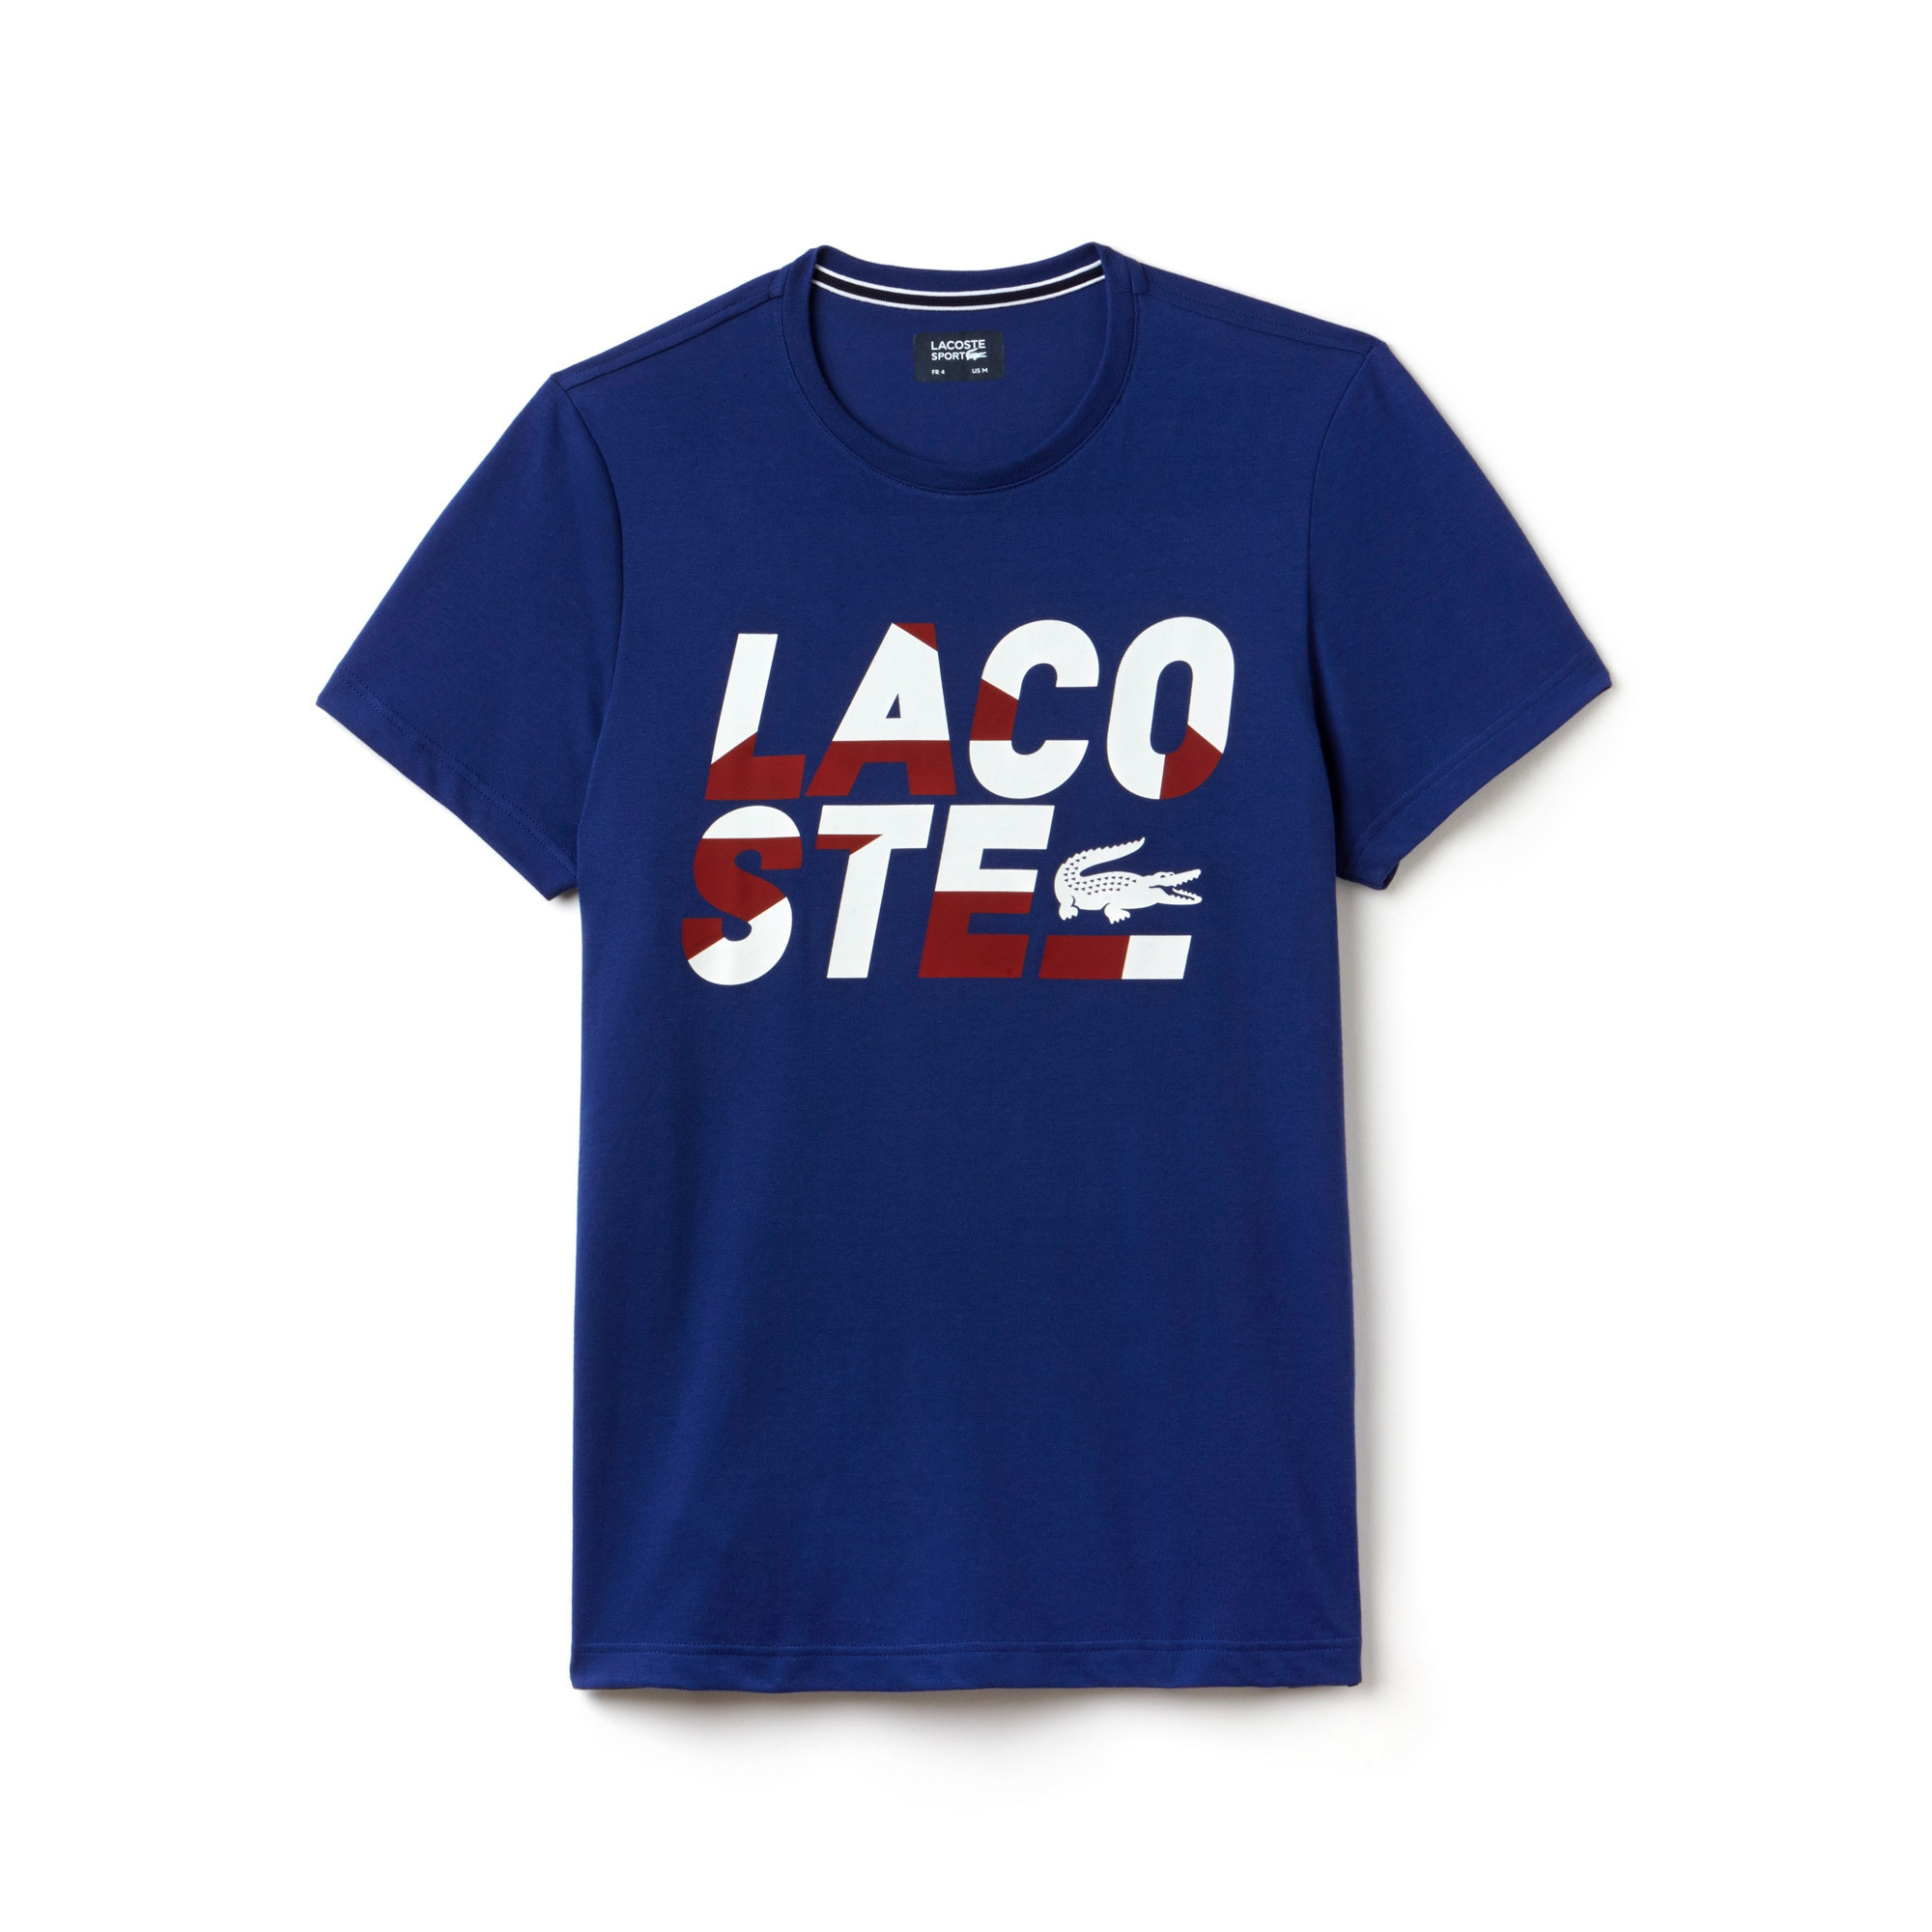 Men's Lacoste SPORT Tennis Lettering Technical Jersey T-shirt